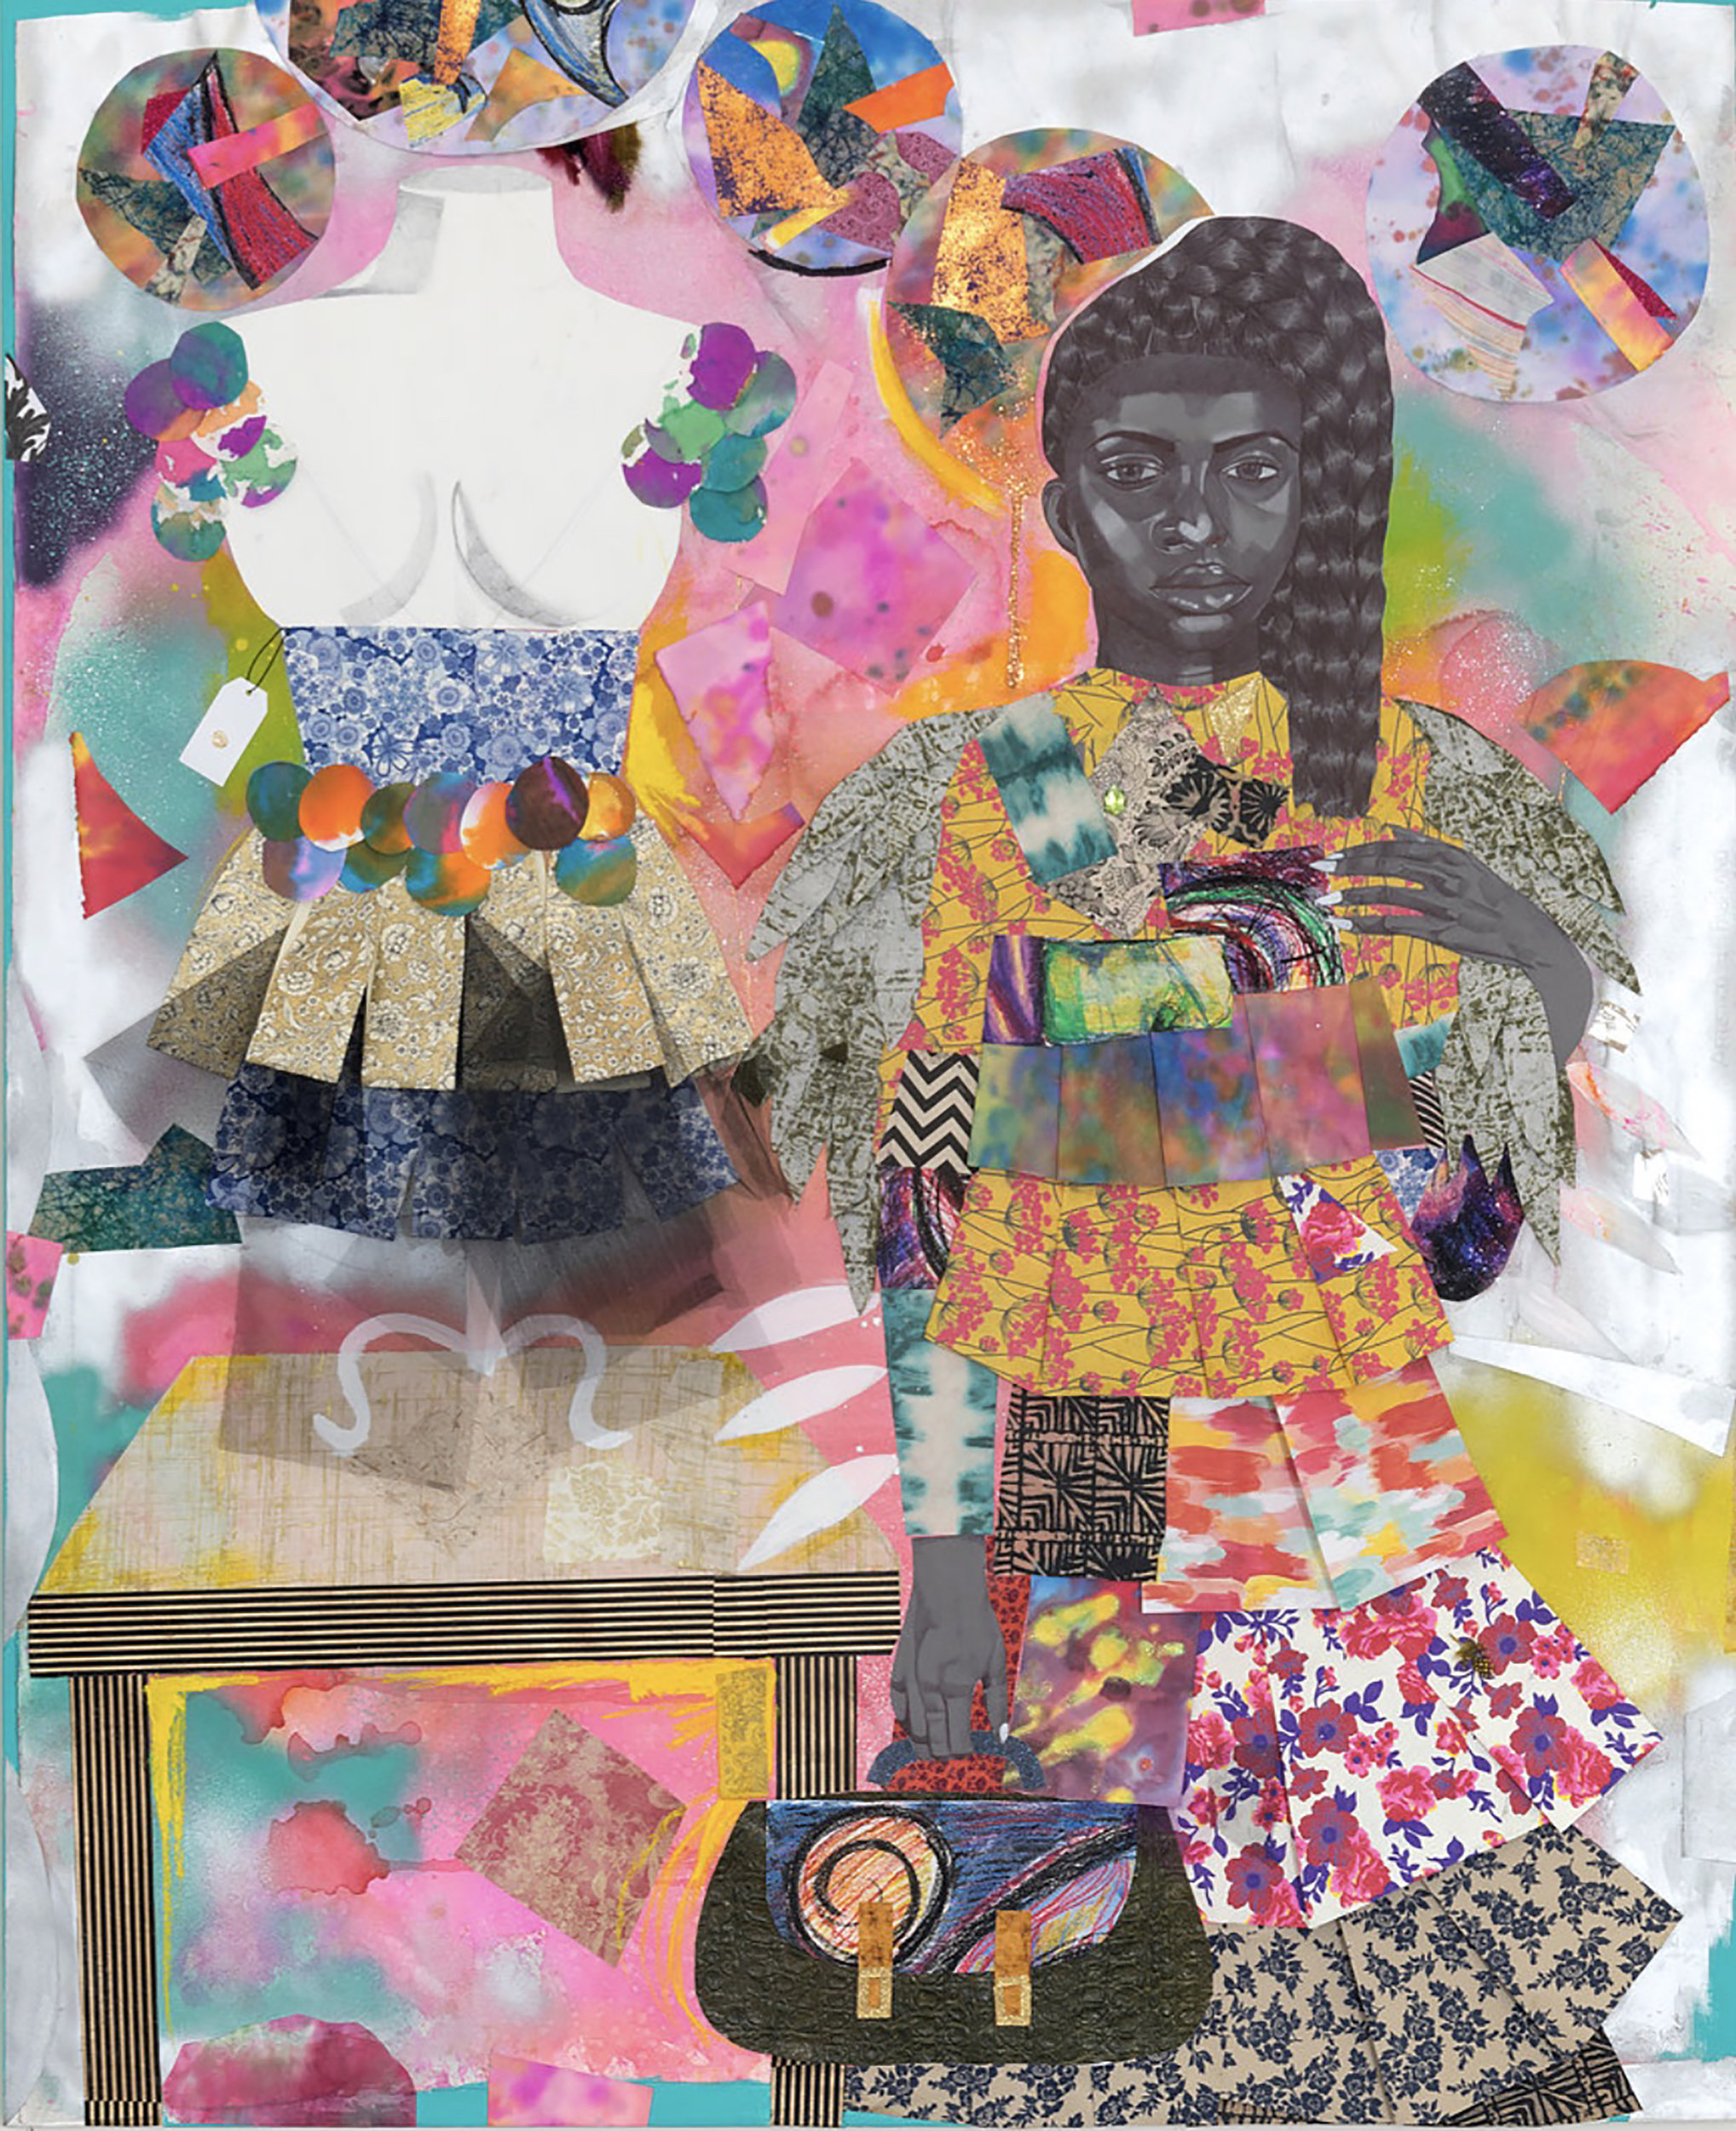 """""""Girl Standing with Green Alligator Bag Next to Mannequin,"""" 2018, 67 x 54 in. Acrylic, spray paint, glitter, ink, tulle and cut paper collage on canvas. Courtesy of Kravets/Wehby Gallery and the artist."""